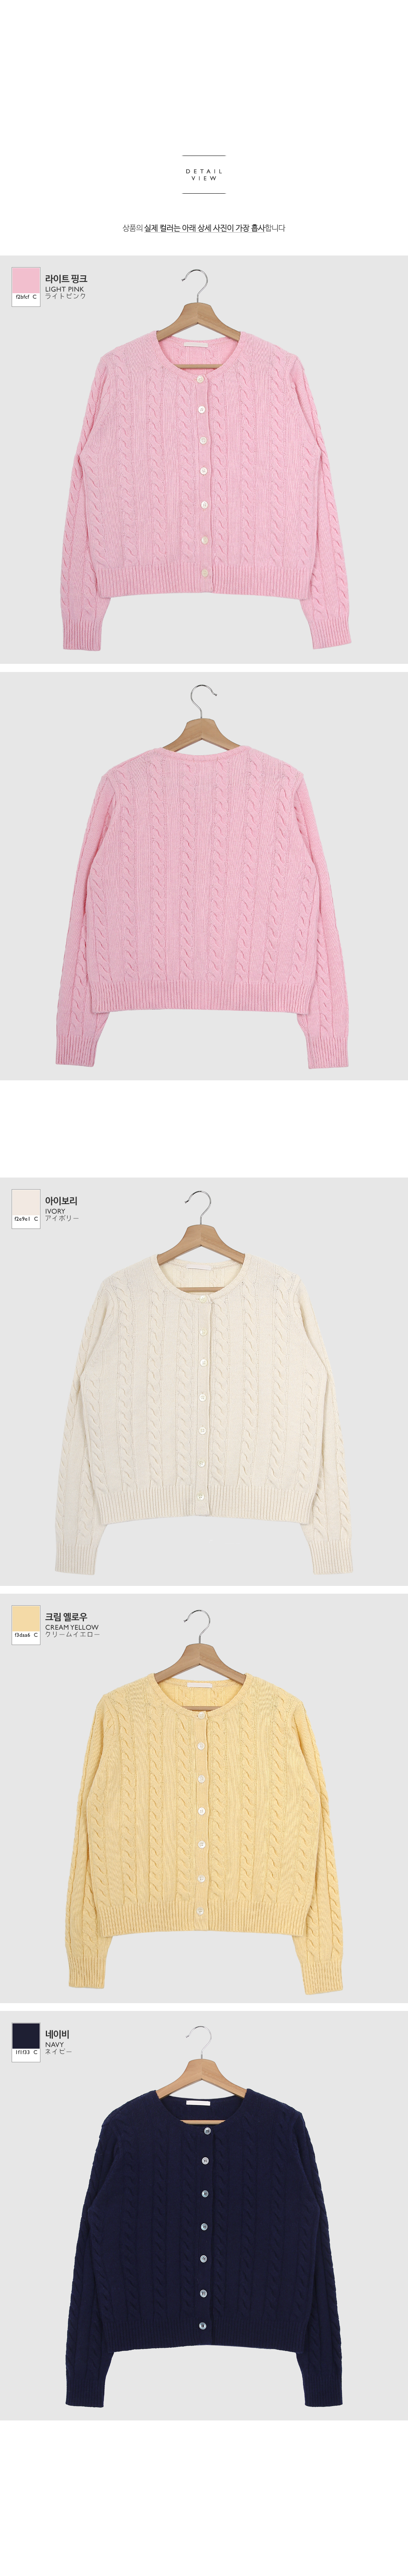 Ralph Pollop Cable Cardigan